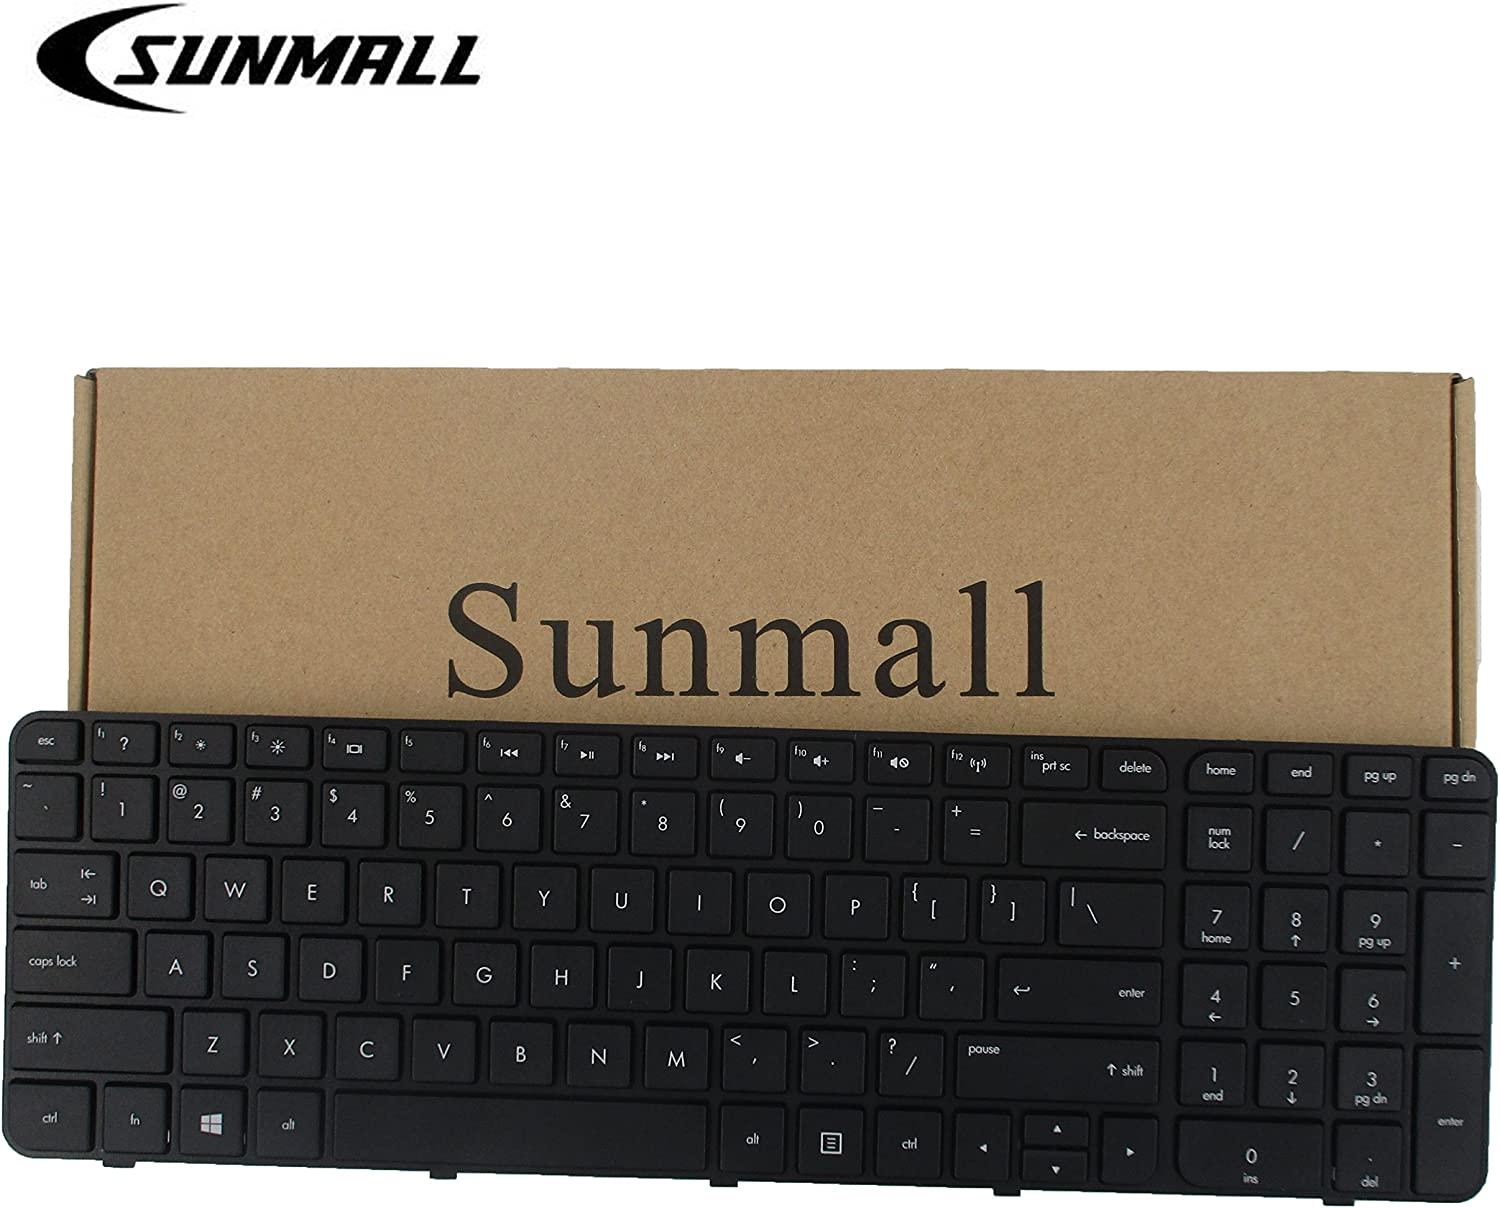 SUNMALL Replacement Keyboard with Frame for HP Pavilion G7-2000 G7-2100 G7-2200 G7-2300 G7Z-2000 G7Z-2100 G7Z-2200 G7Z-2300 G7Z-2400 (CTO) R39 Serise Black US Layout